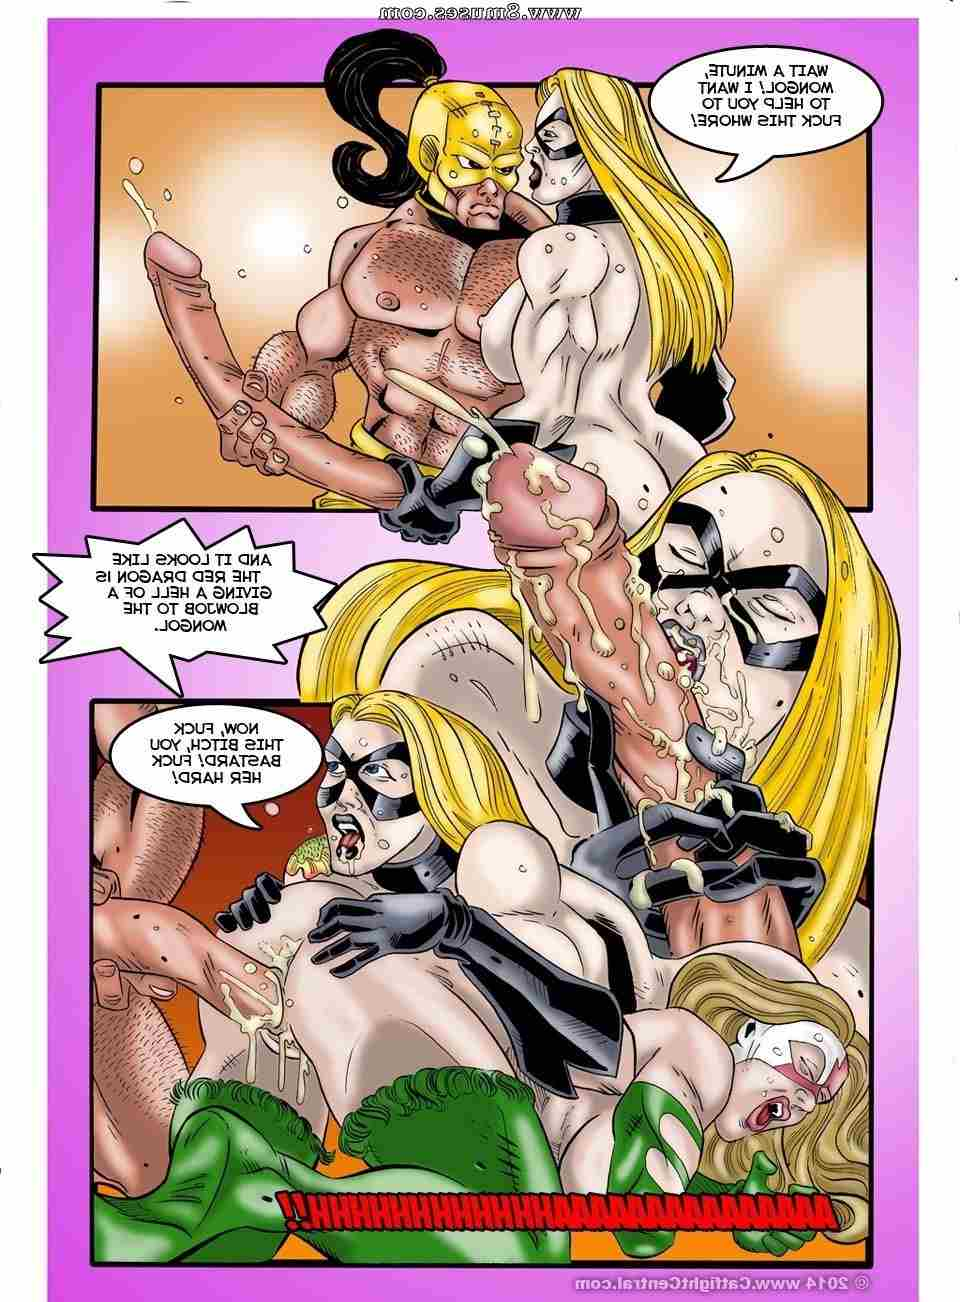 Central-Comics/Catfight-Central/Lucha-Libre-XXX Lucha_Libre_XXX__8muses_-_Sex_and_Porn_Comics_44.jpg